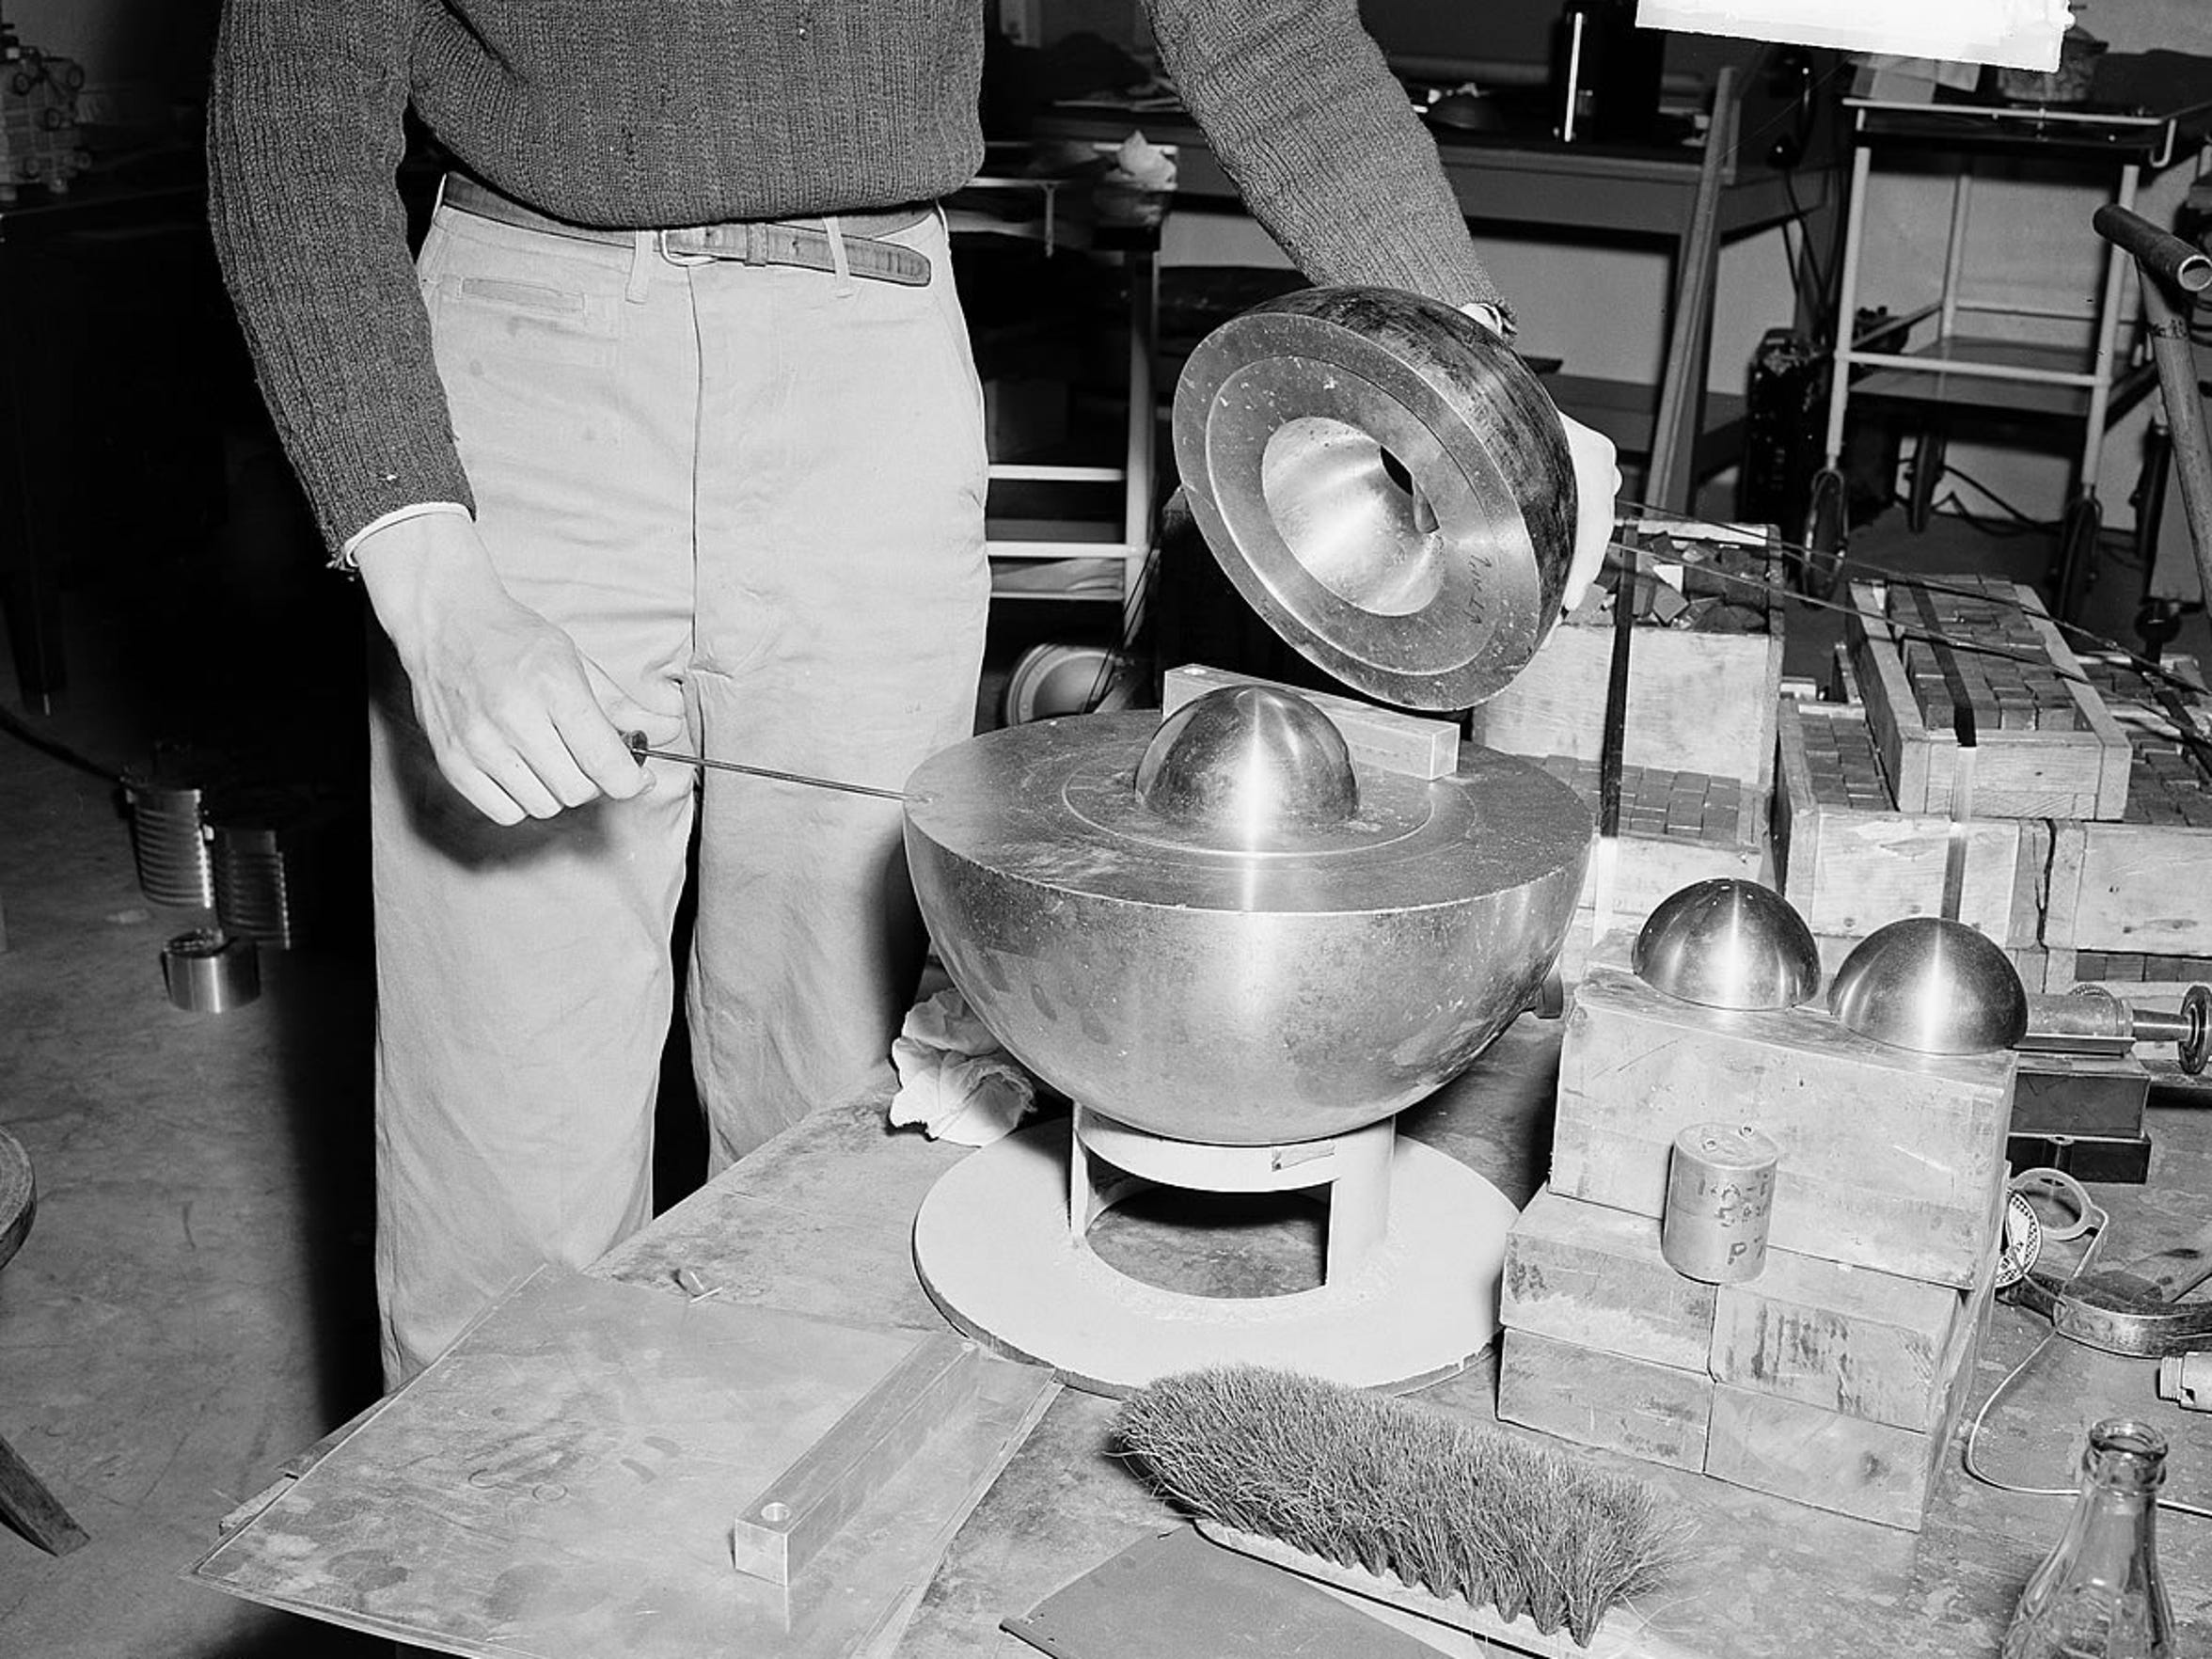 Los Alamos scientist Louis Slotin held the two halves of the core apart with a screwdriver. It slipped, killing him.